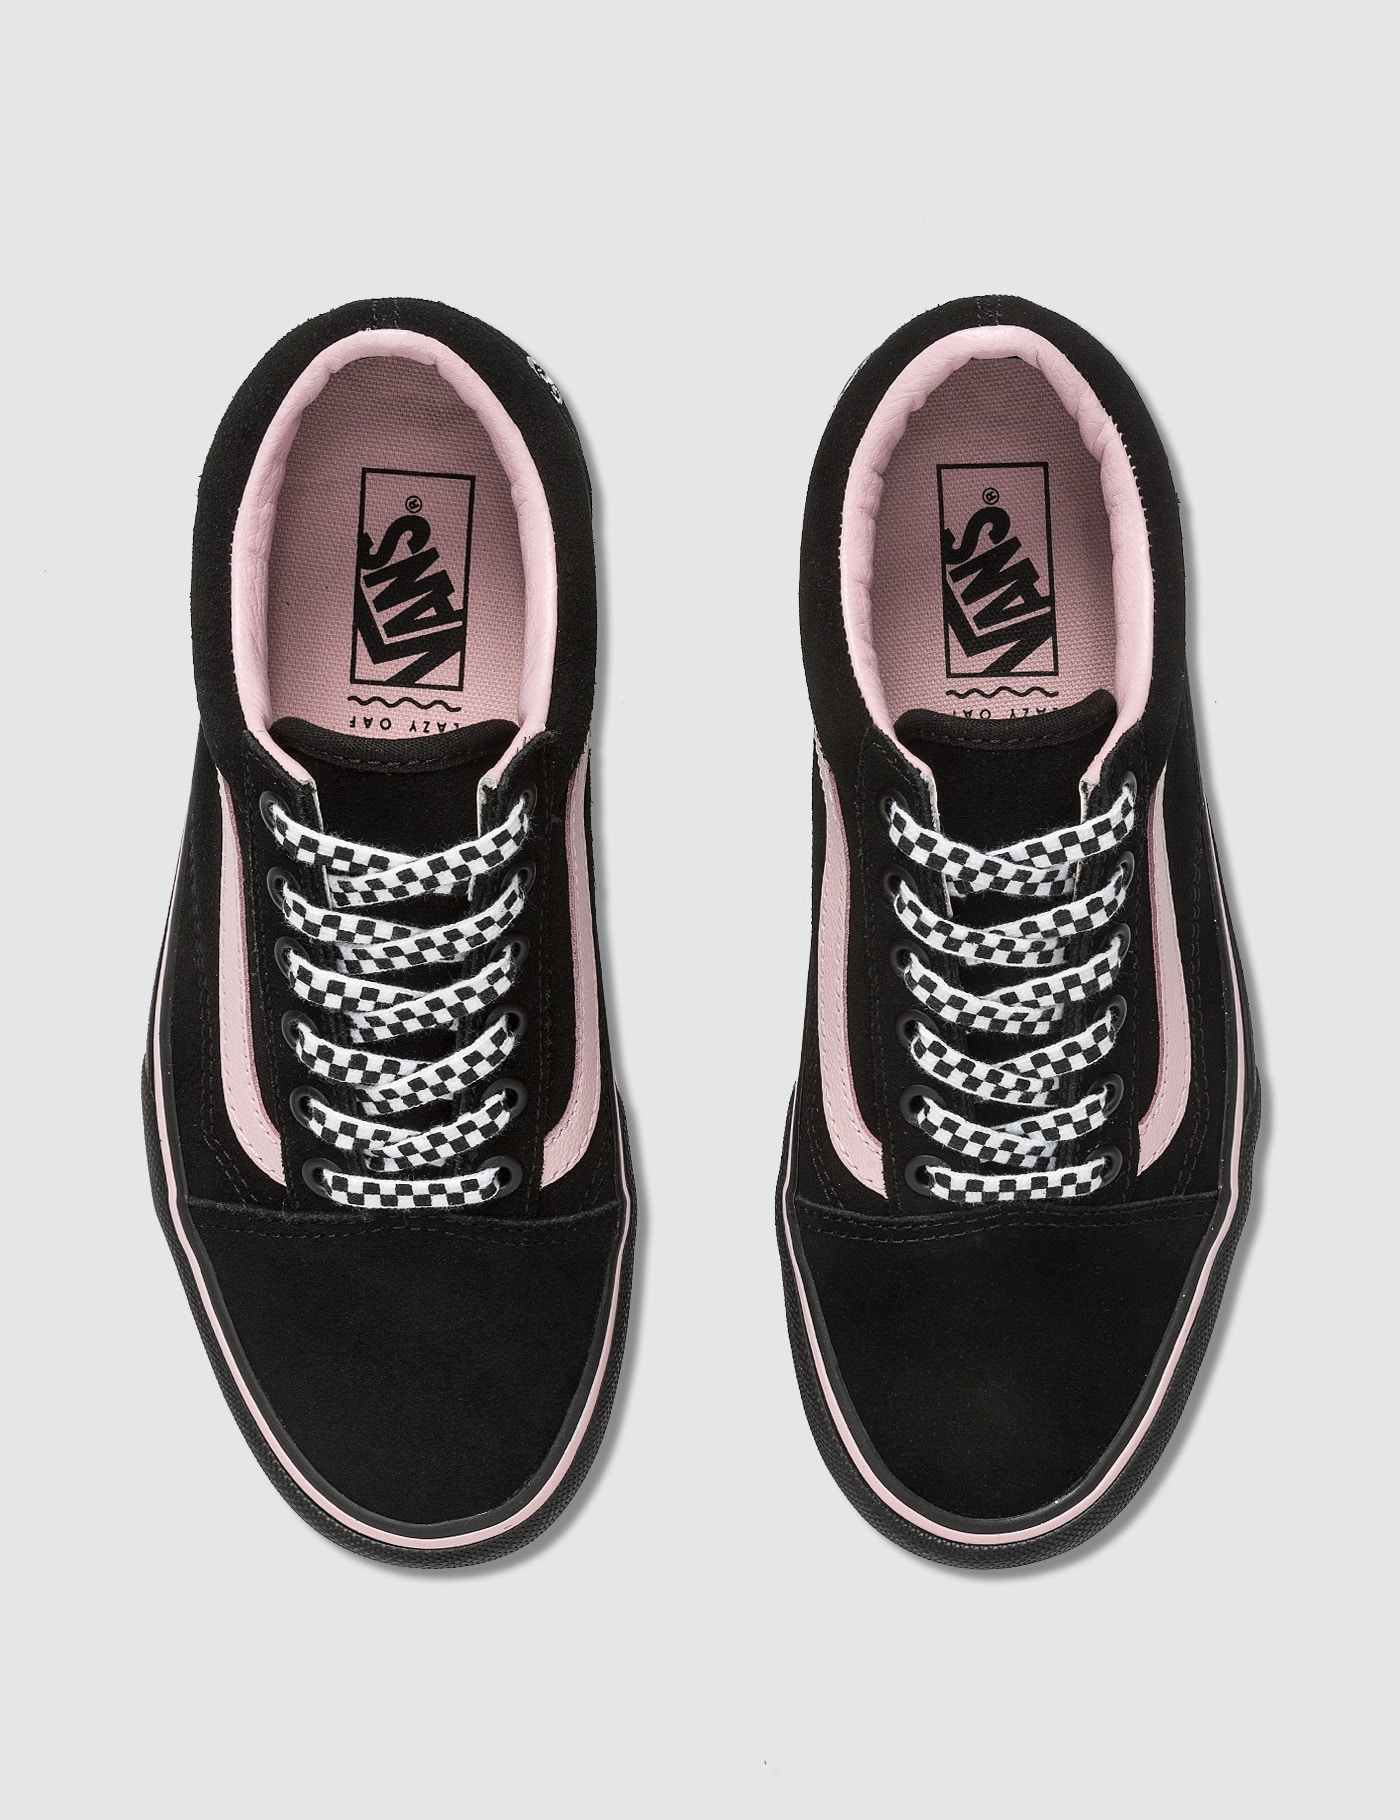 32a490a16150 Buy Original Vans Lazy Oaf x Old Skool Platform at Indonesia ...